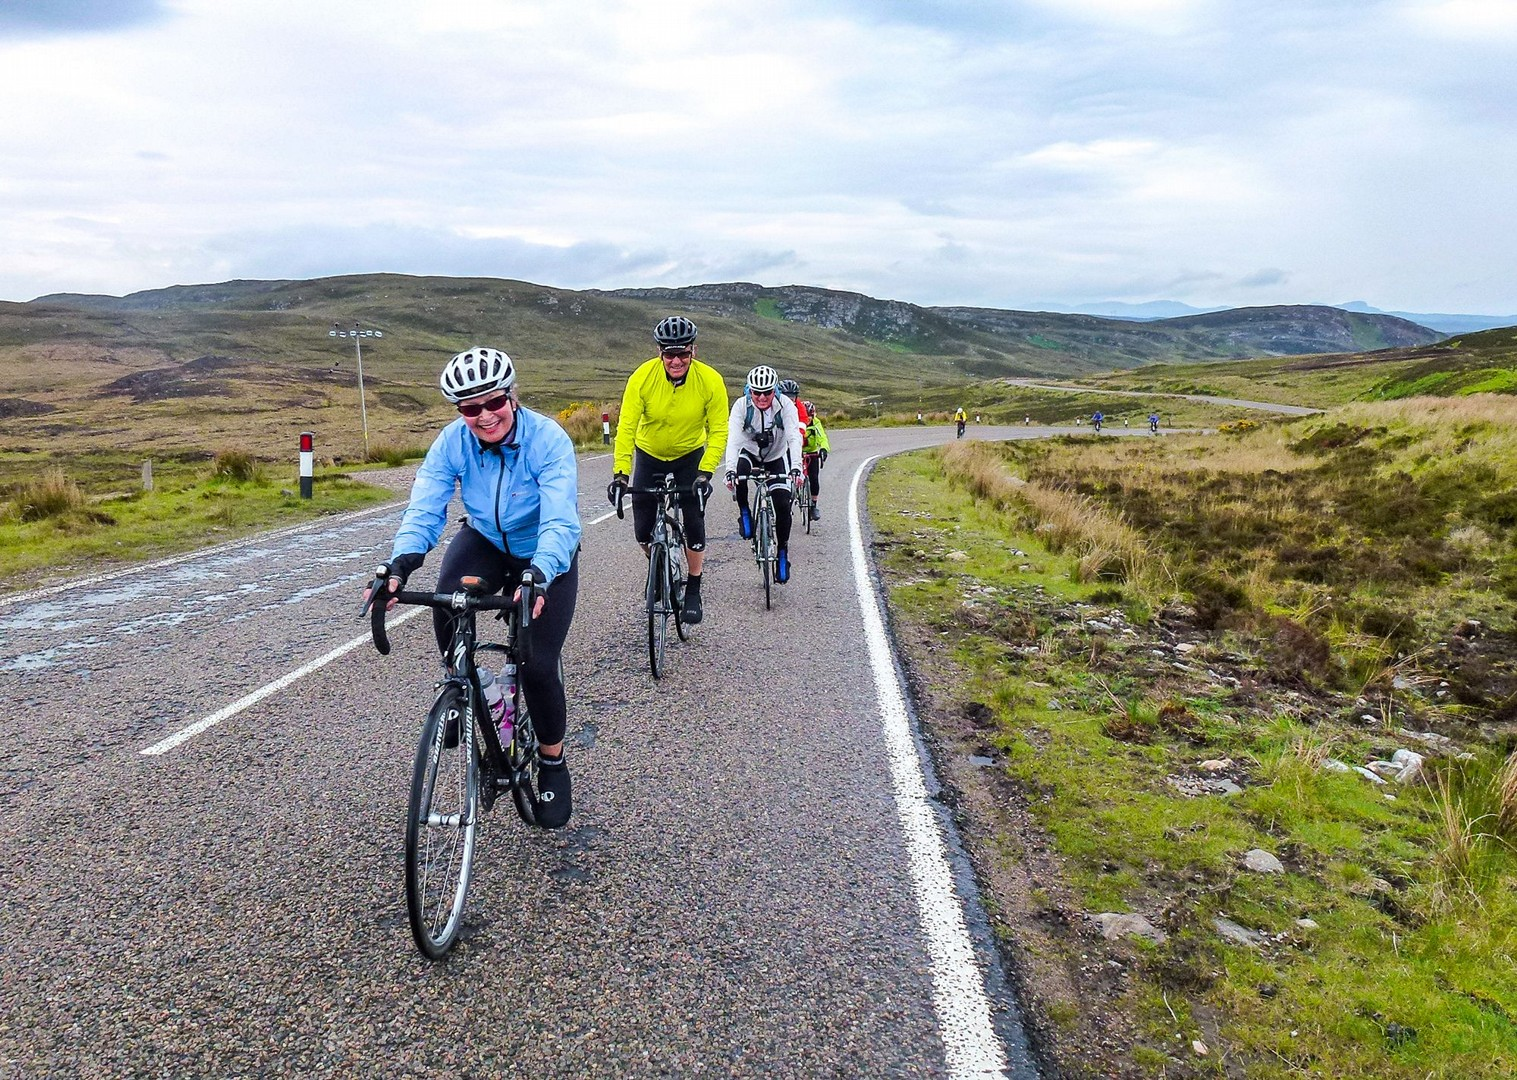 cycle-the-length-of-britain-with-saddle-skedaddle-guided-cycling-holiday.jpg - UK - Land's End to John O'Groats Explorer (22 days) - Guided Cycling Holiday - Road Cycling